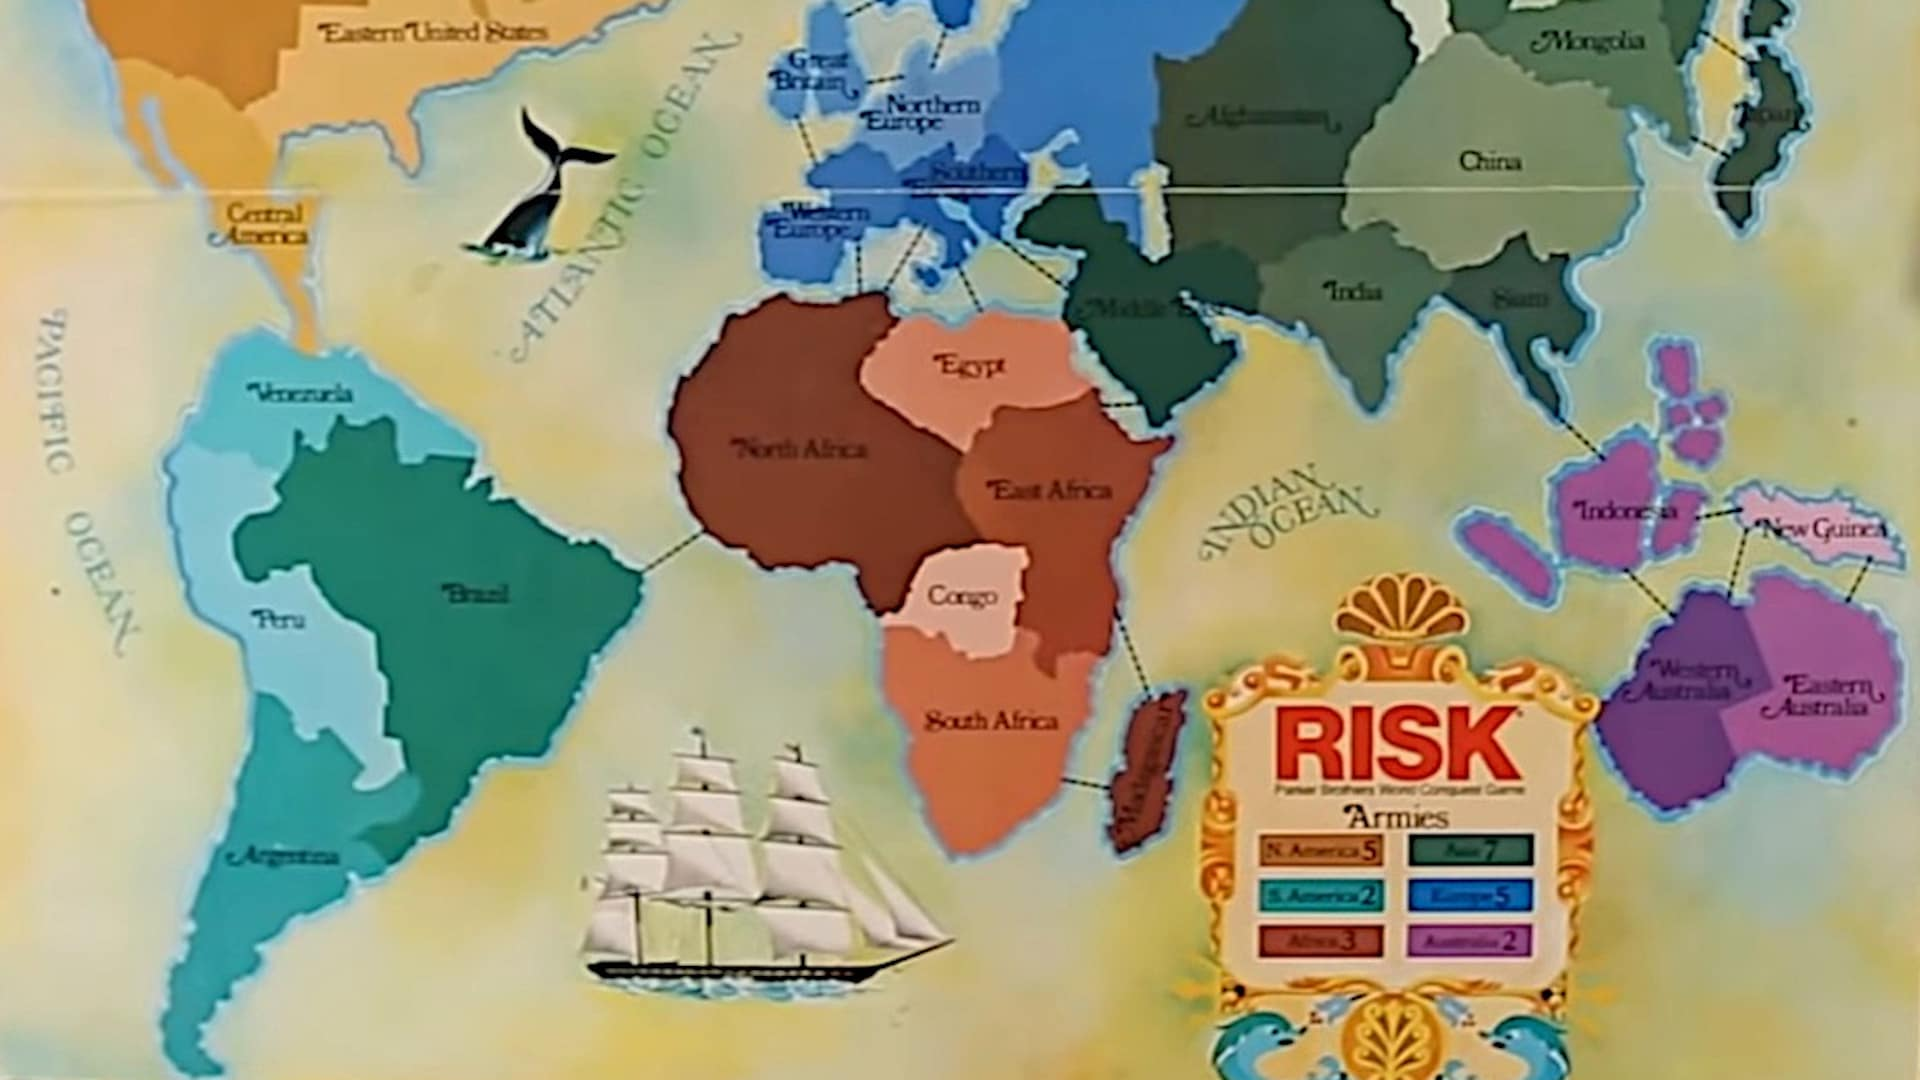 How to play Risk?